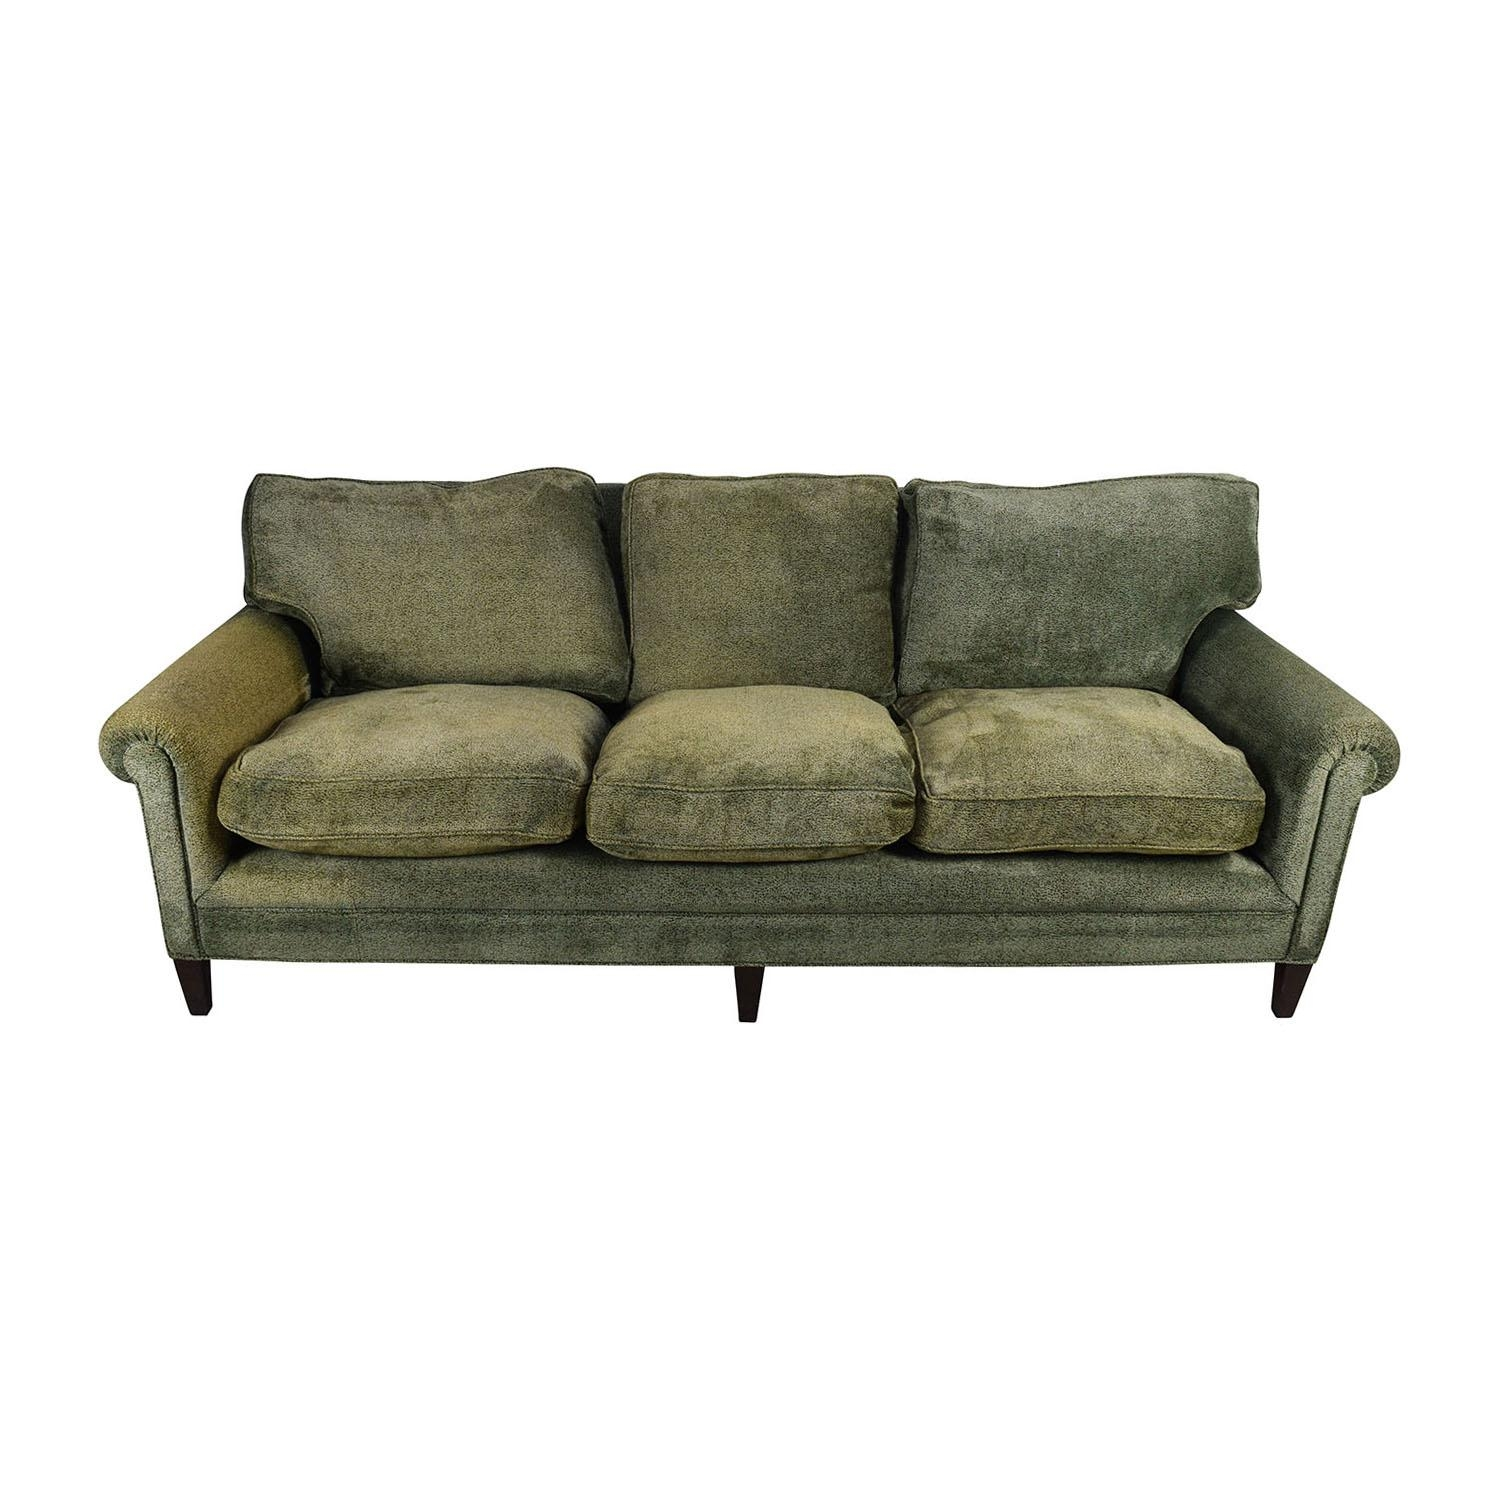 89% Off - George Smith George Smith Classic English Style Sofa / Sofas intended for Classic Sofas for Sale